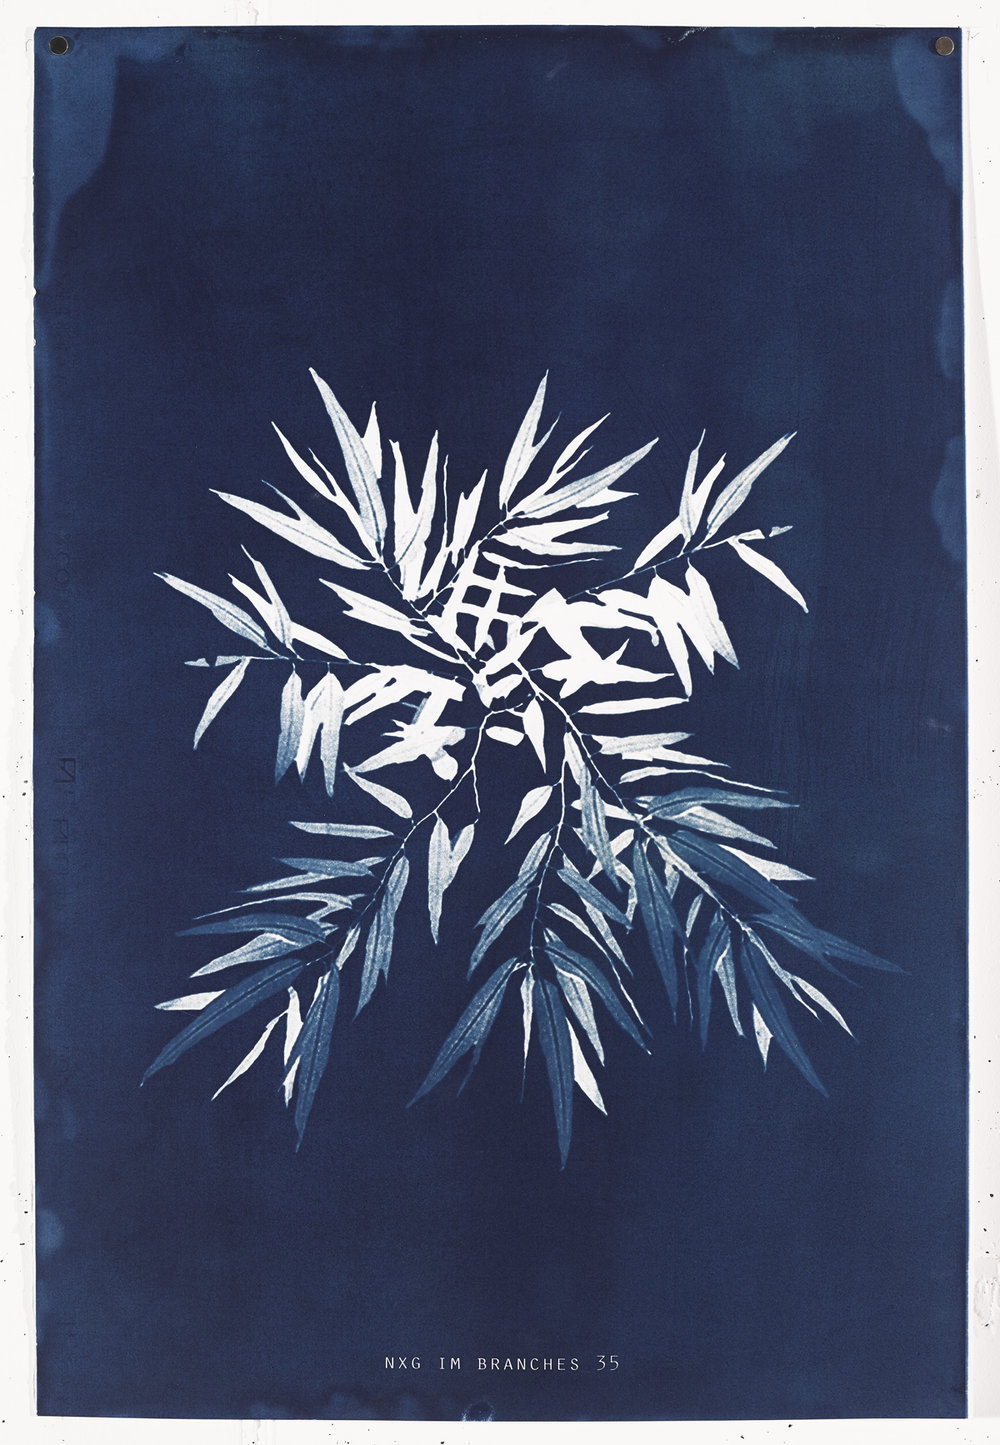 NXG_IM_BRANCHES_35 , Unique cyanotype print on Fabriano No.5, 90.4 x 61 cm, 2017.